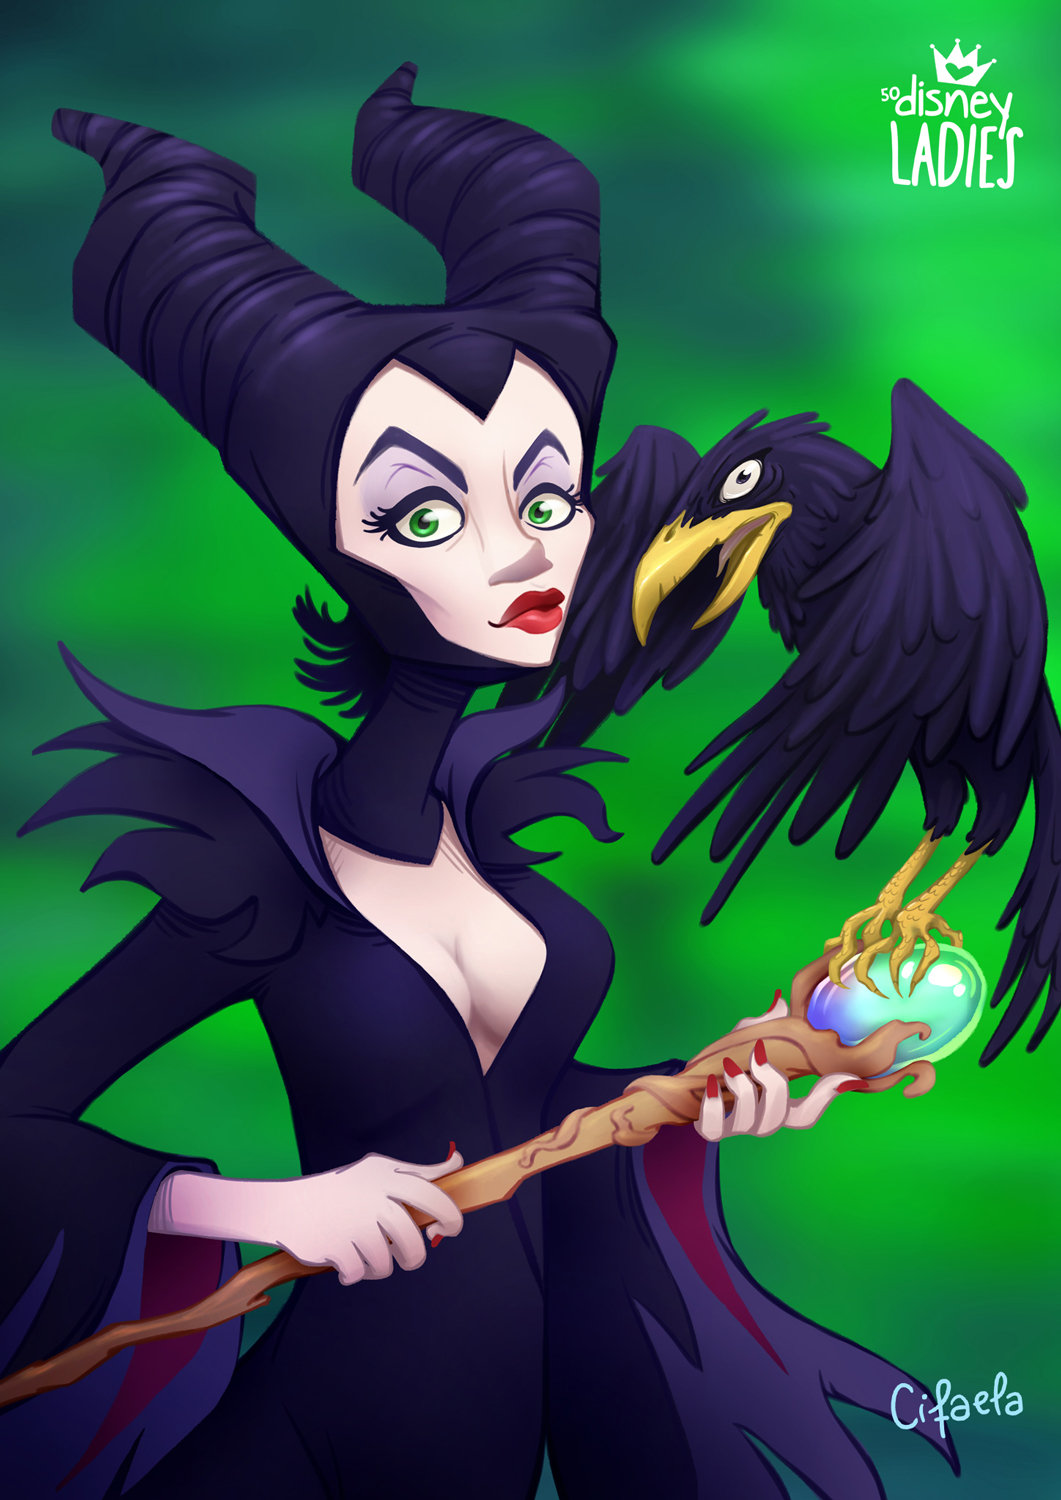 Fabiola monteiro disneyladies maleficent010